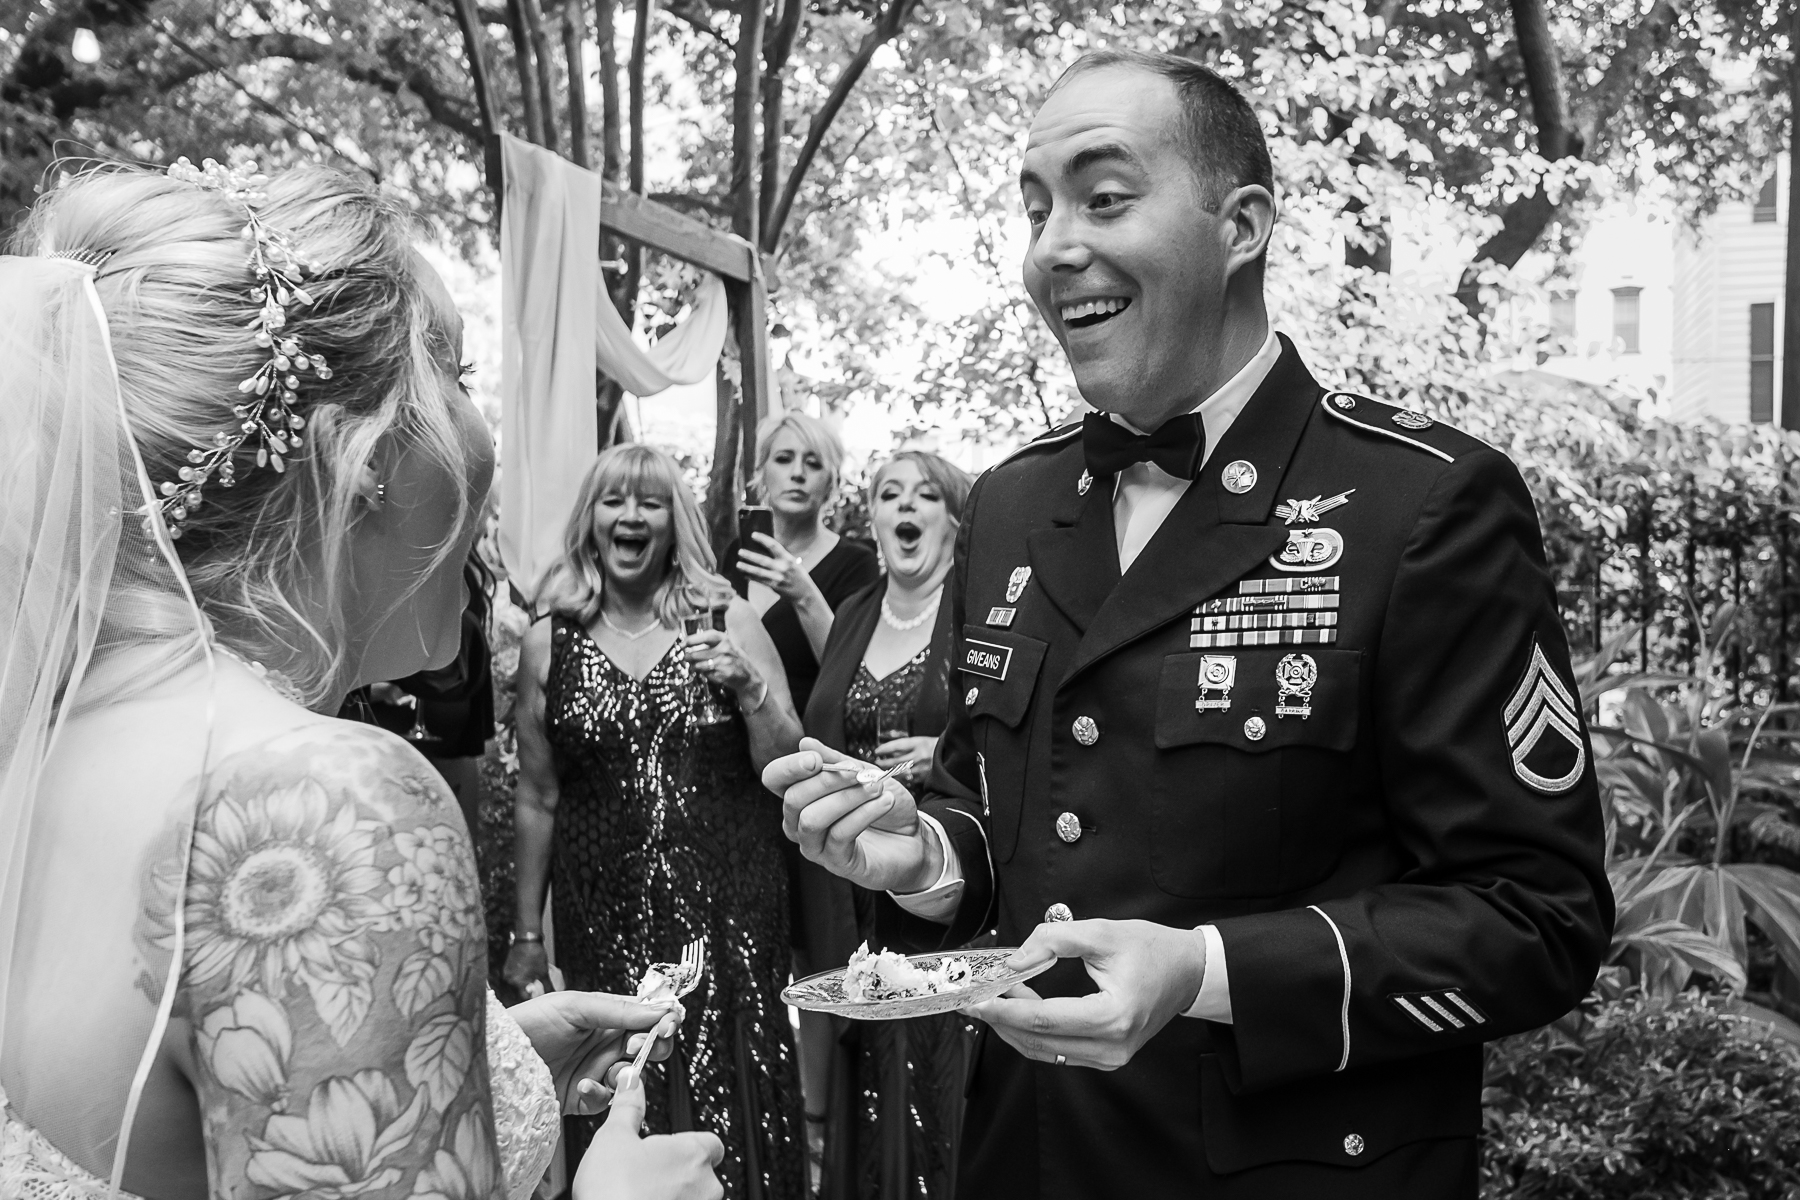 Wedding Photo Gallery from Savannah, Georgia | Everyone reacts to the cake accident